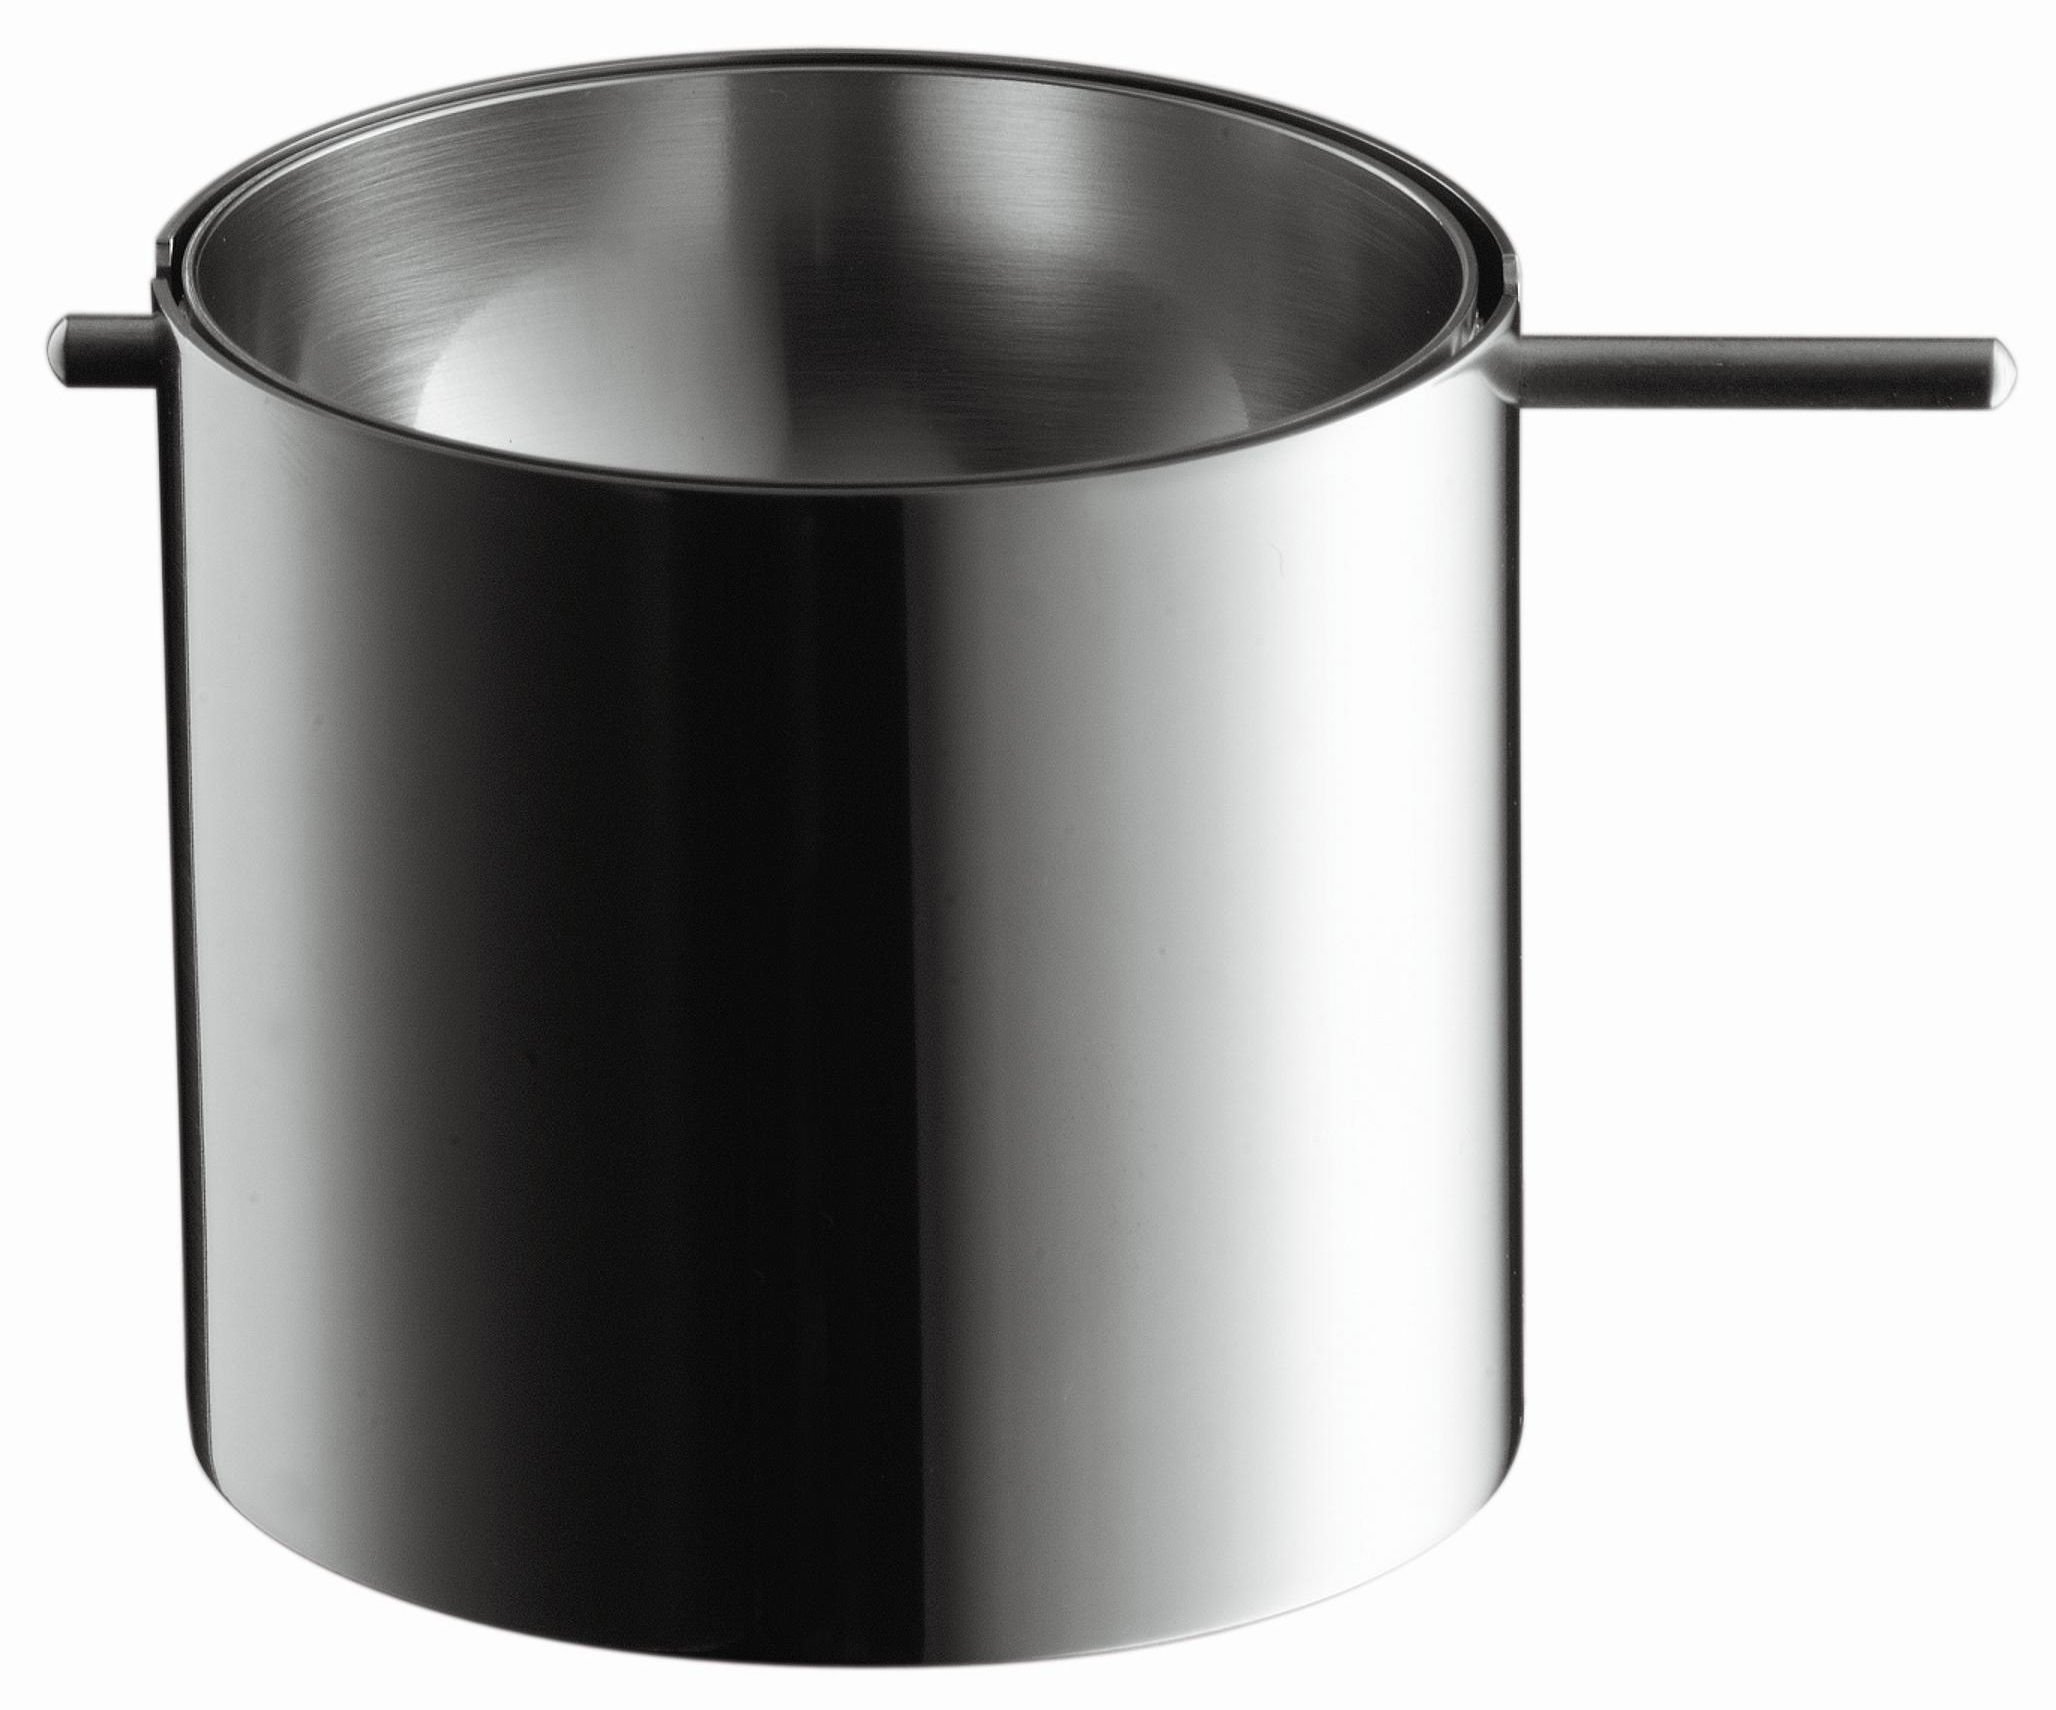 Accessories - Ashtrays - Cylinda-Line Ashtray - Revolving ash tray by Stelton - Small - Stainless steel